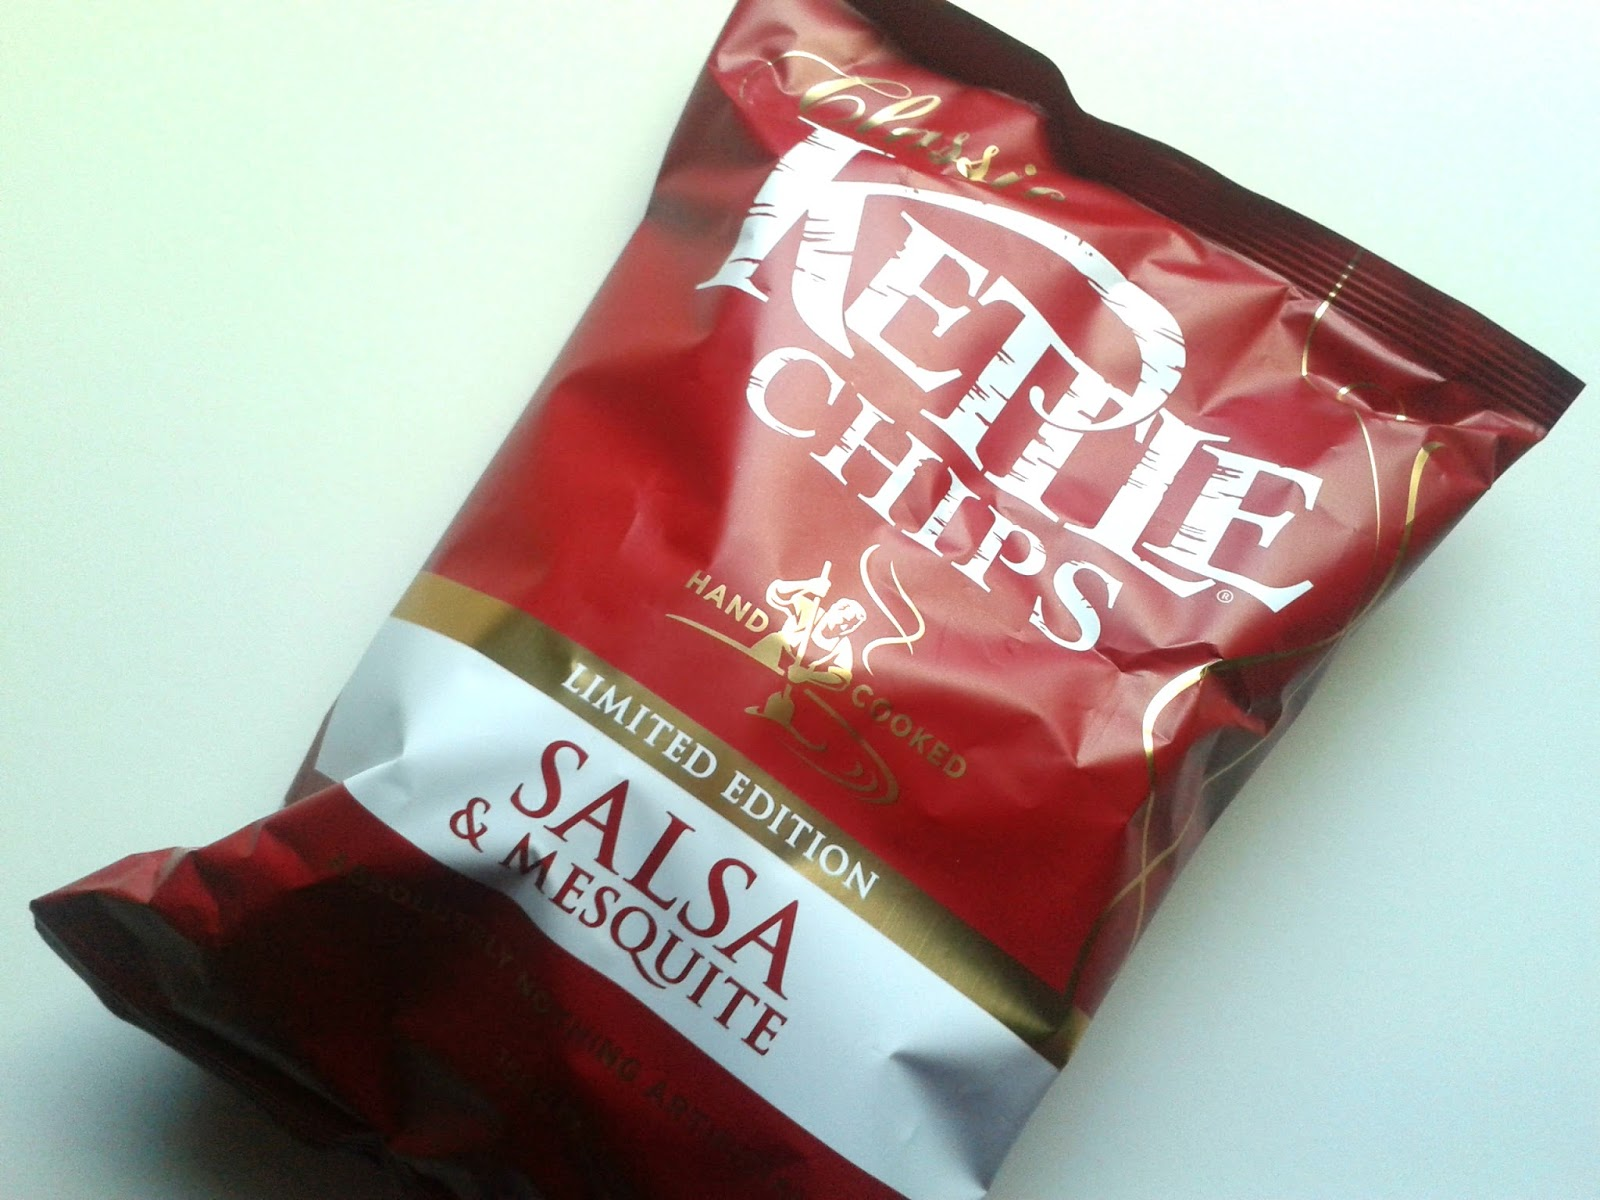 Winter Degustabox Limited Edition Classic Salsa & Mesquite Kettle Chips